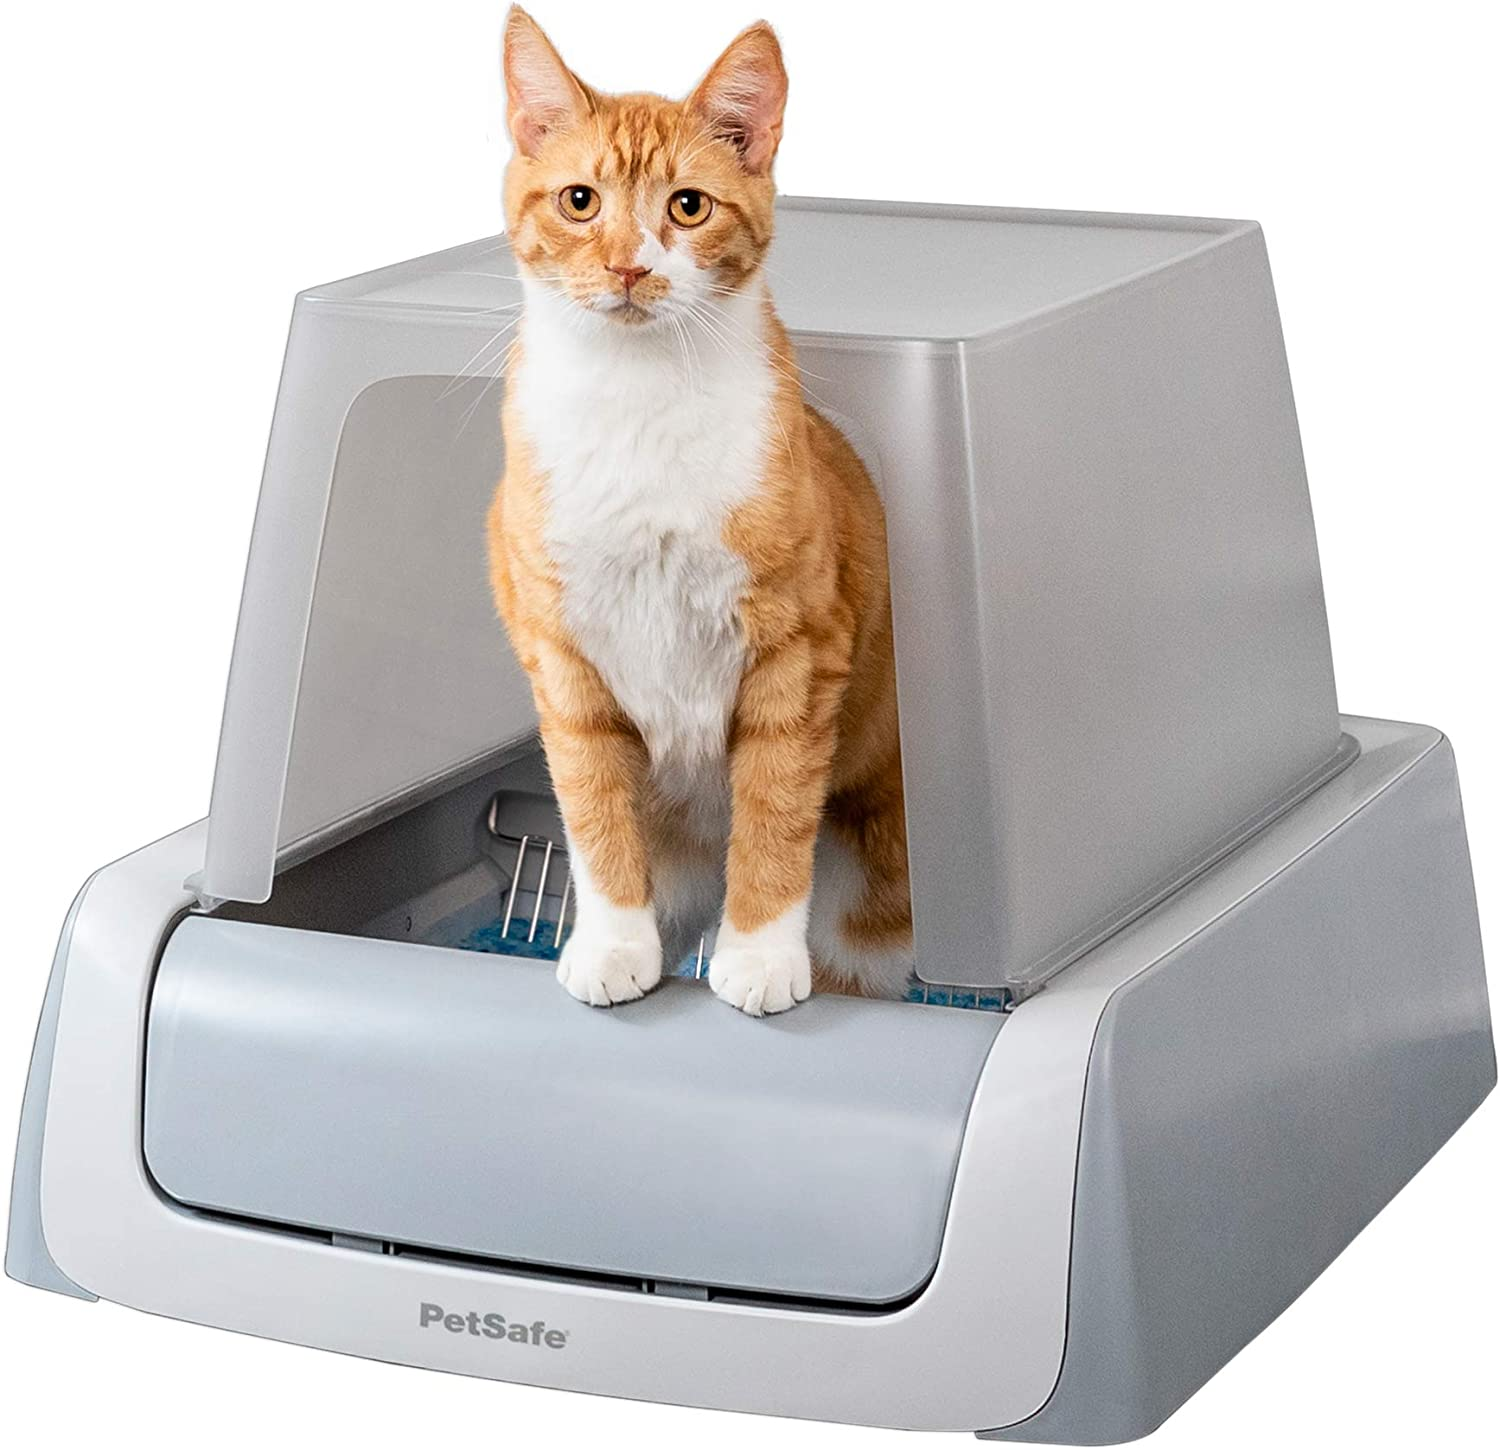 Top 10 Best Self Cleaning Litter Box For Large Cats [Updated December 2020] 1